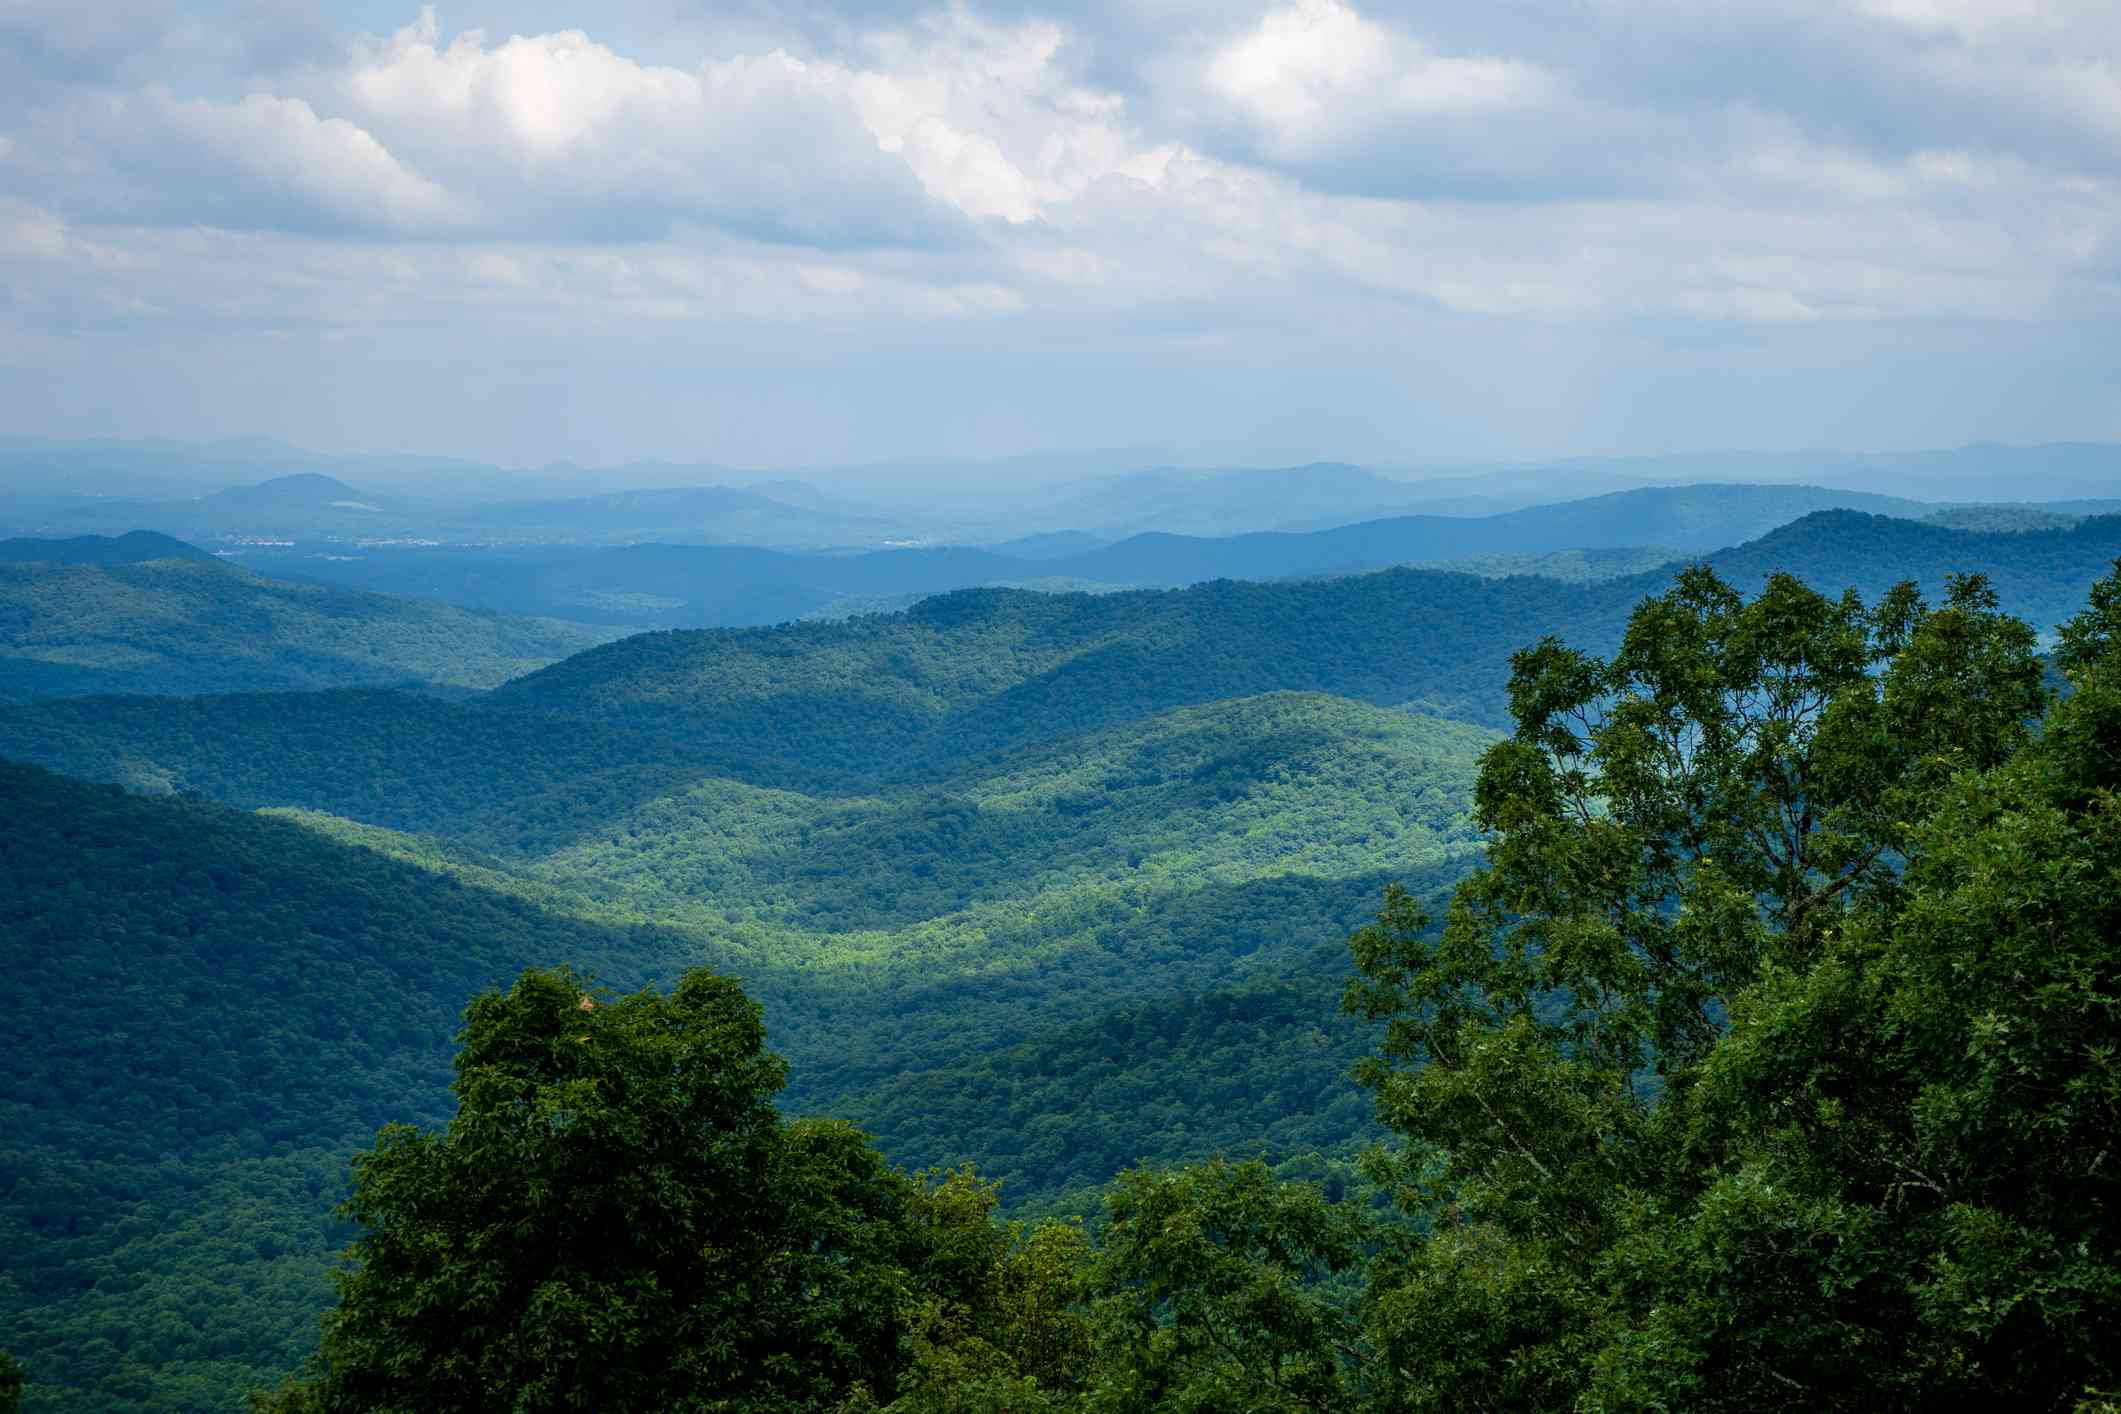 Mount Pisgah National Forest, NC